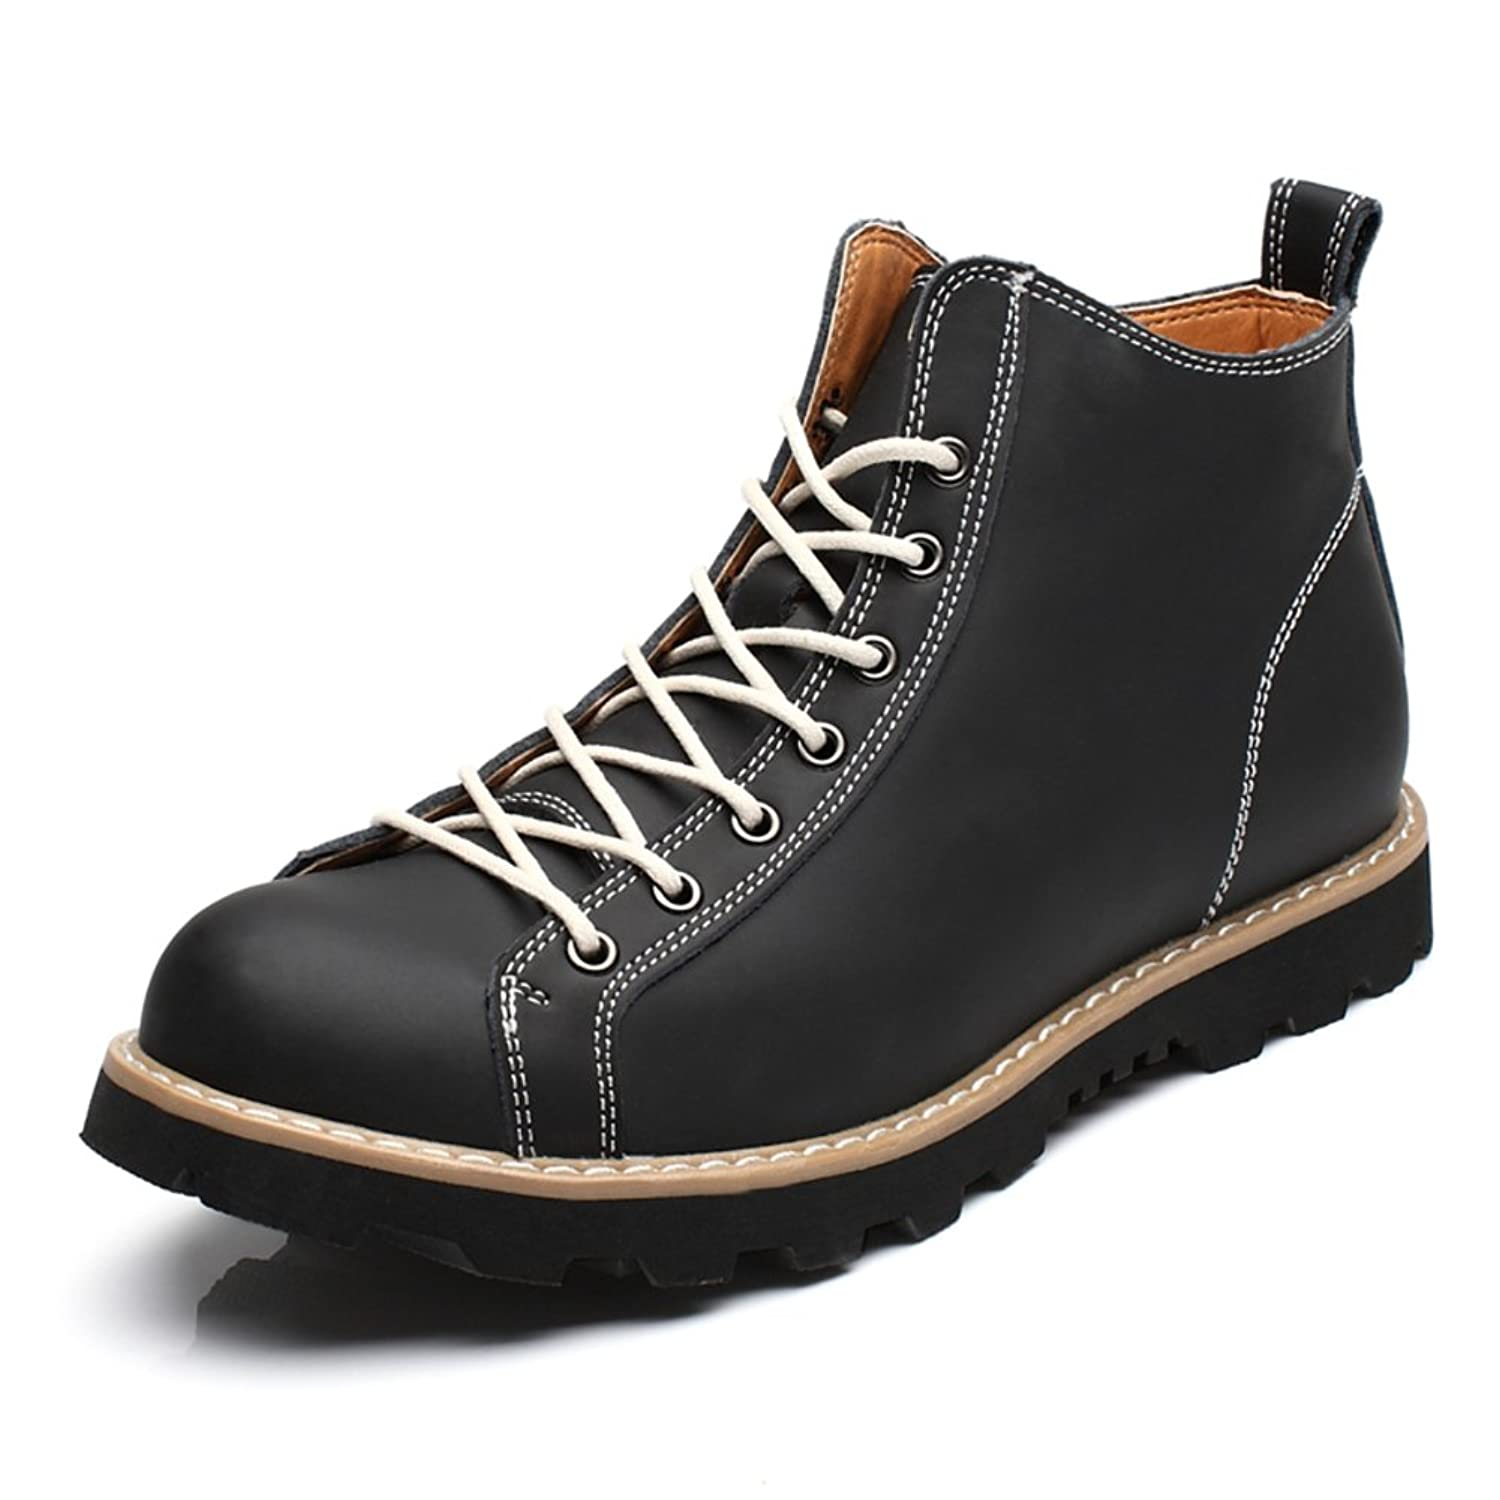 Martin boots/men's short boots /Genuine leather men's boots/fashion high-top shoes/Retro tooling boots UK